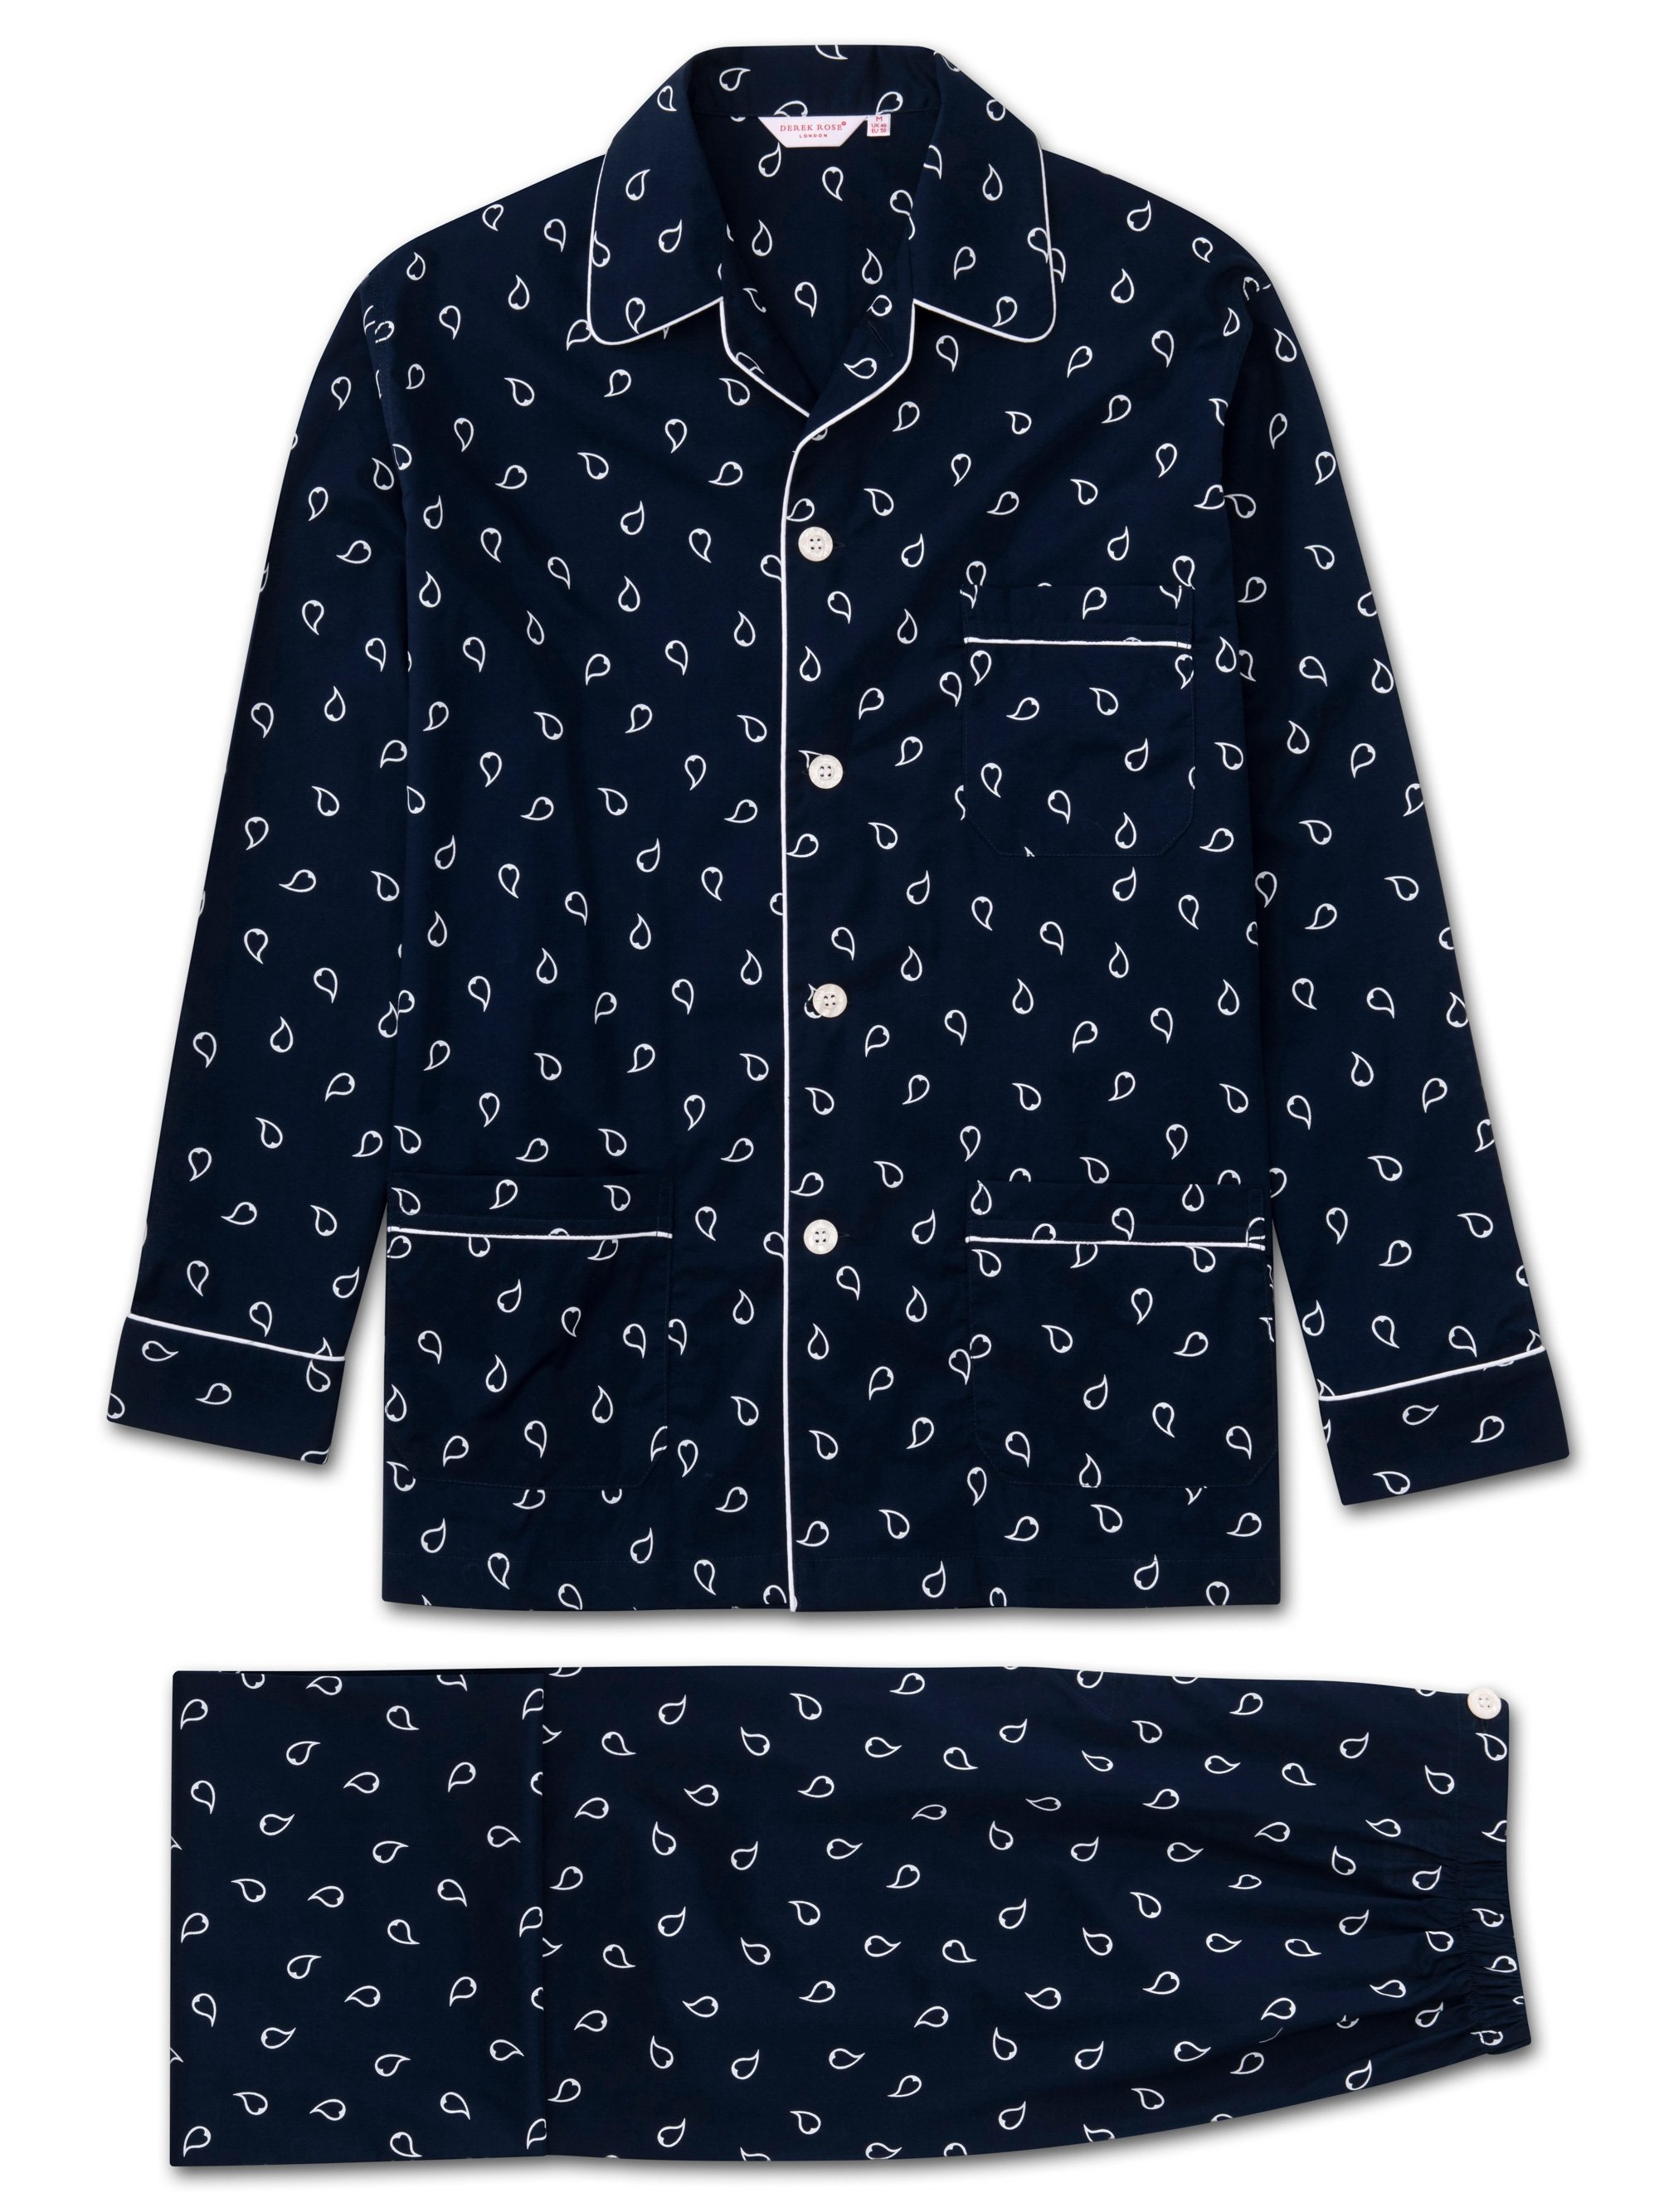 Men's Classic Fit Piped Pyjamas Nelson 74 Cotton Batiste Navy